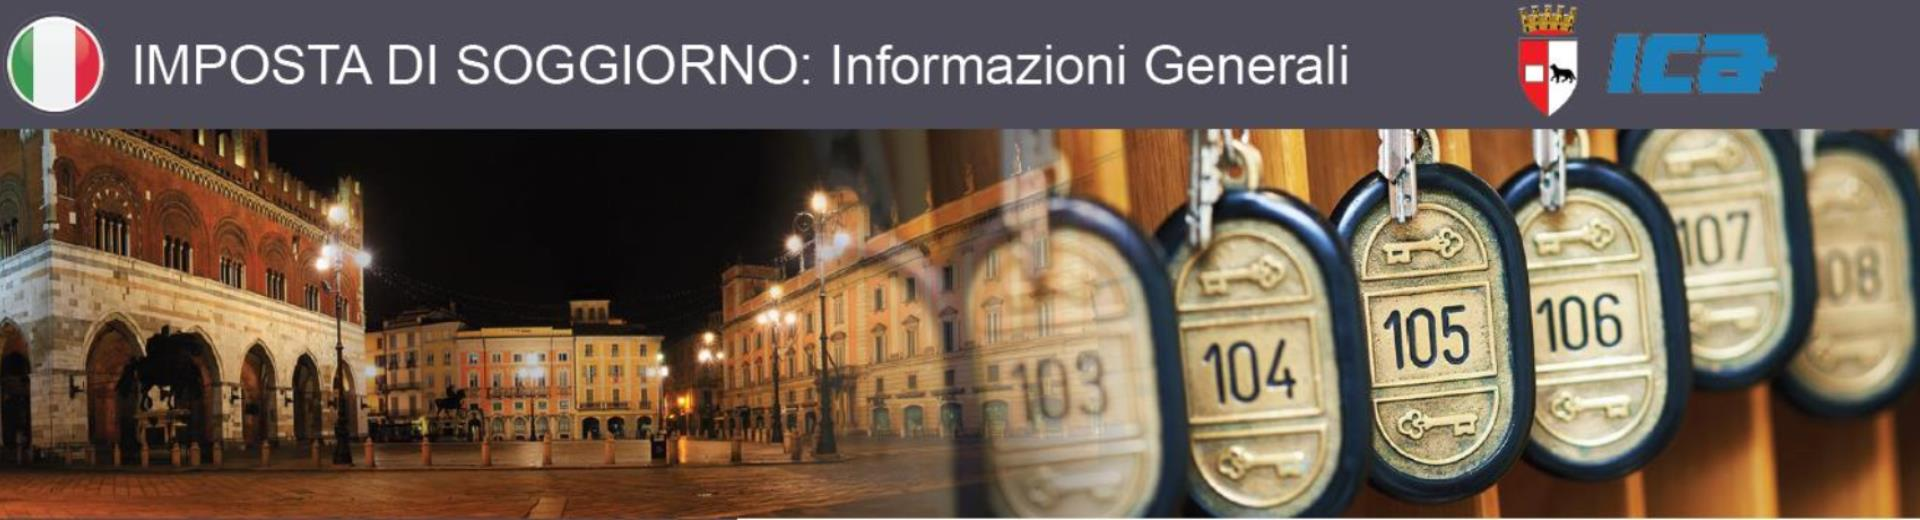 https://www.parkhotelpiacenza.it/resources/images/74ed7cd7-74c3-414e-86f2-a0577809f139/it/FWB/tassa-di-soggiorno.jpg